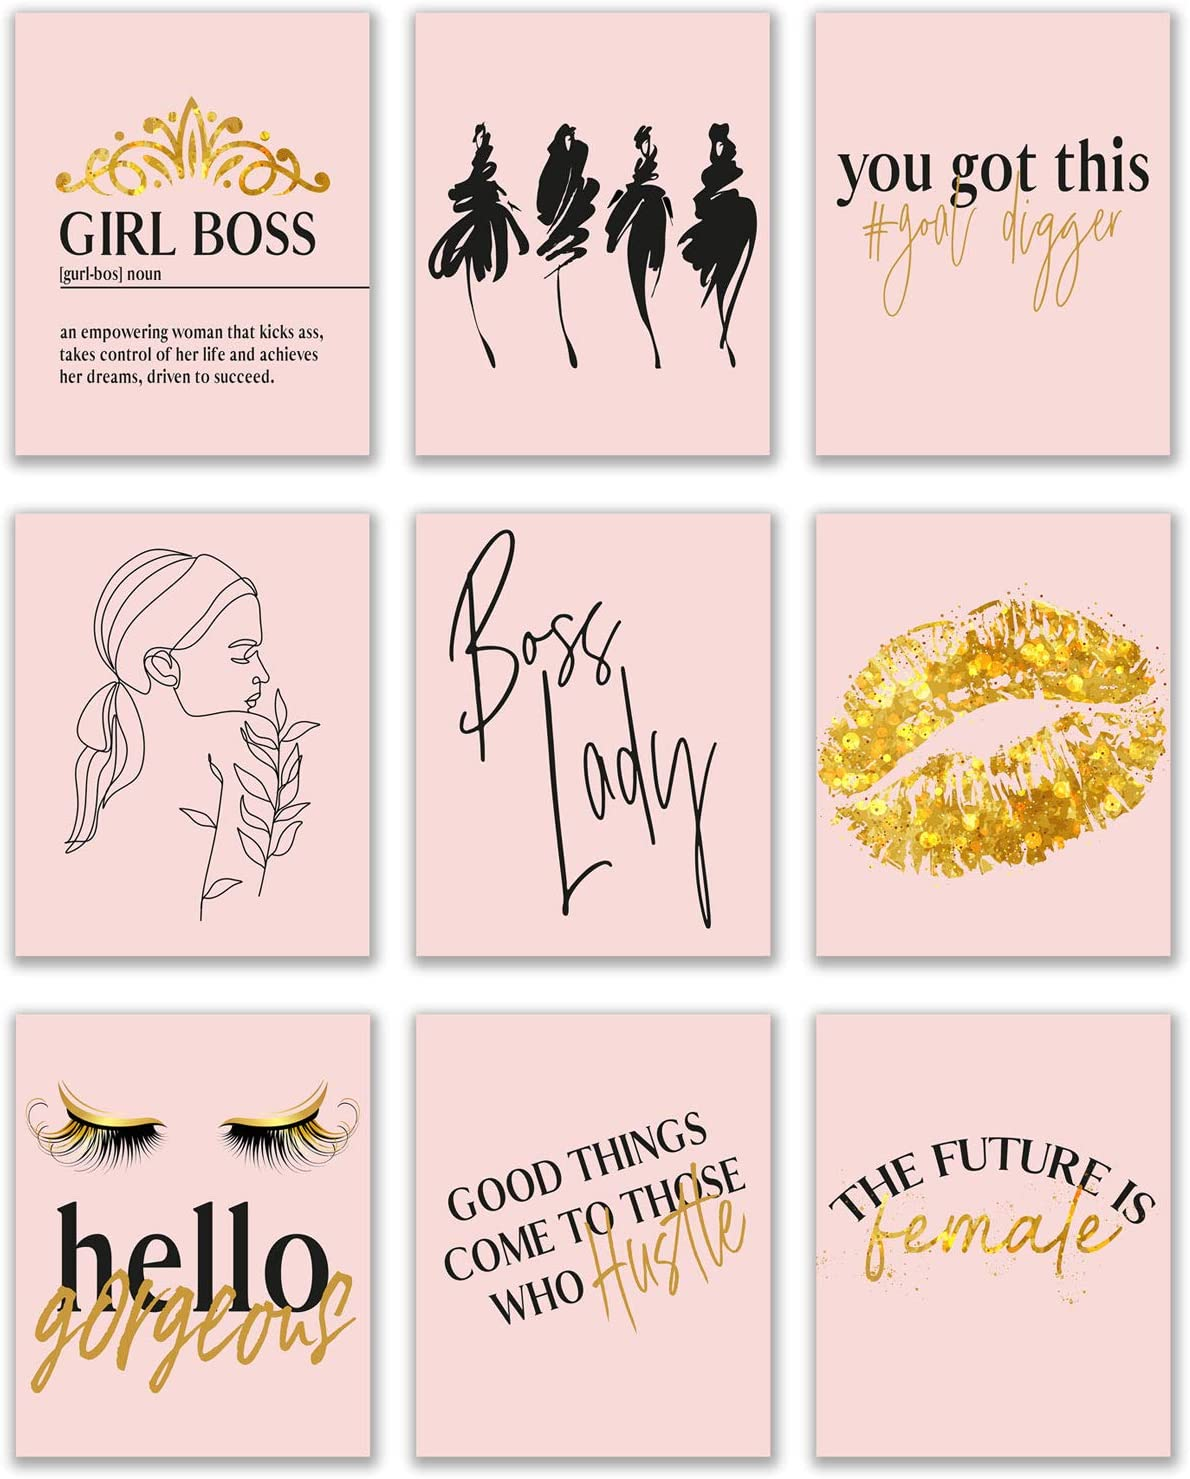 Boss Lady Prints - Set of 9 (8x10) Glossy Blush Pink and Gold Inspirational Hustle Office Motivational Poster Wall Art Women Decor Fashionista Quotes - Lips Lashes Goal Digger Girl Boss Fashion